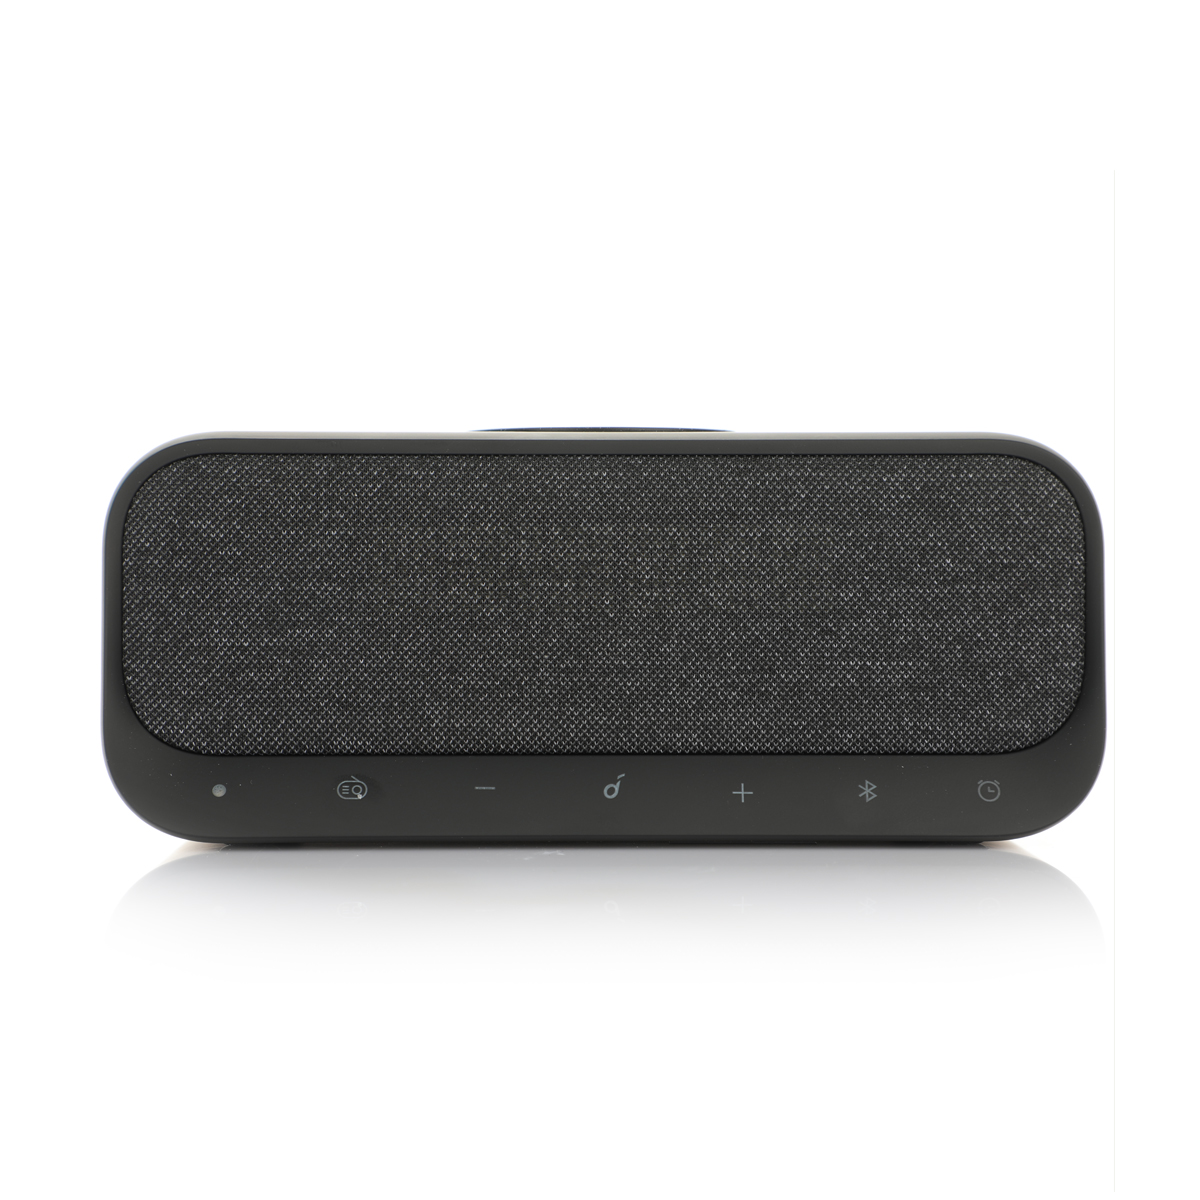 Wakey Soundcore BT Speaker & Wireless Charger - Black